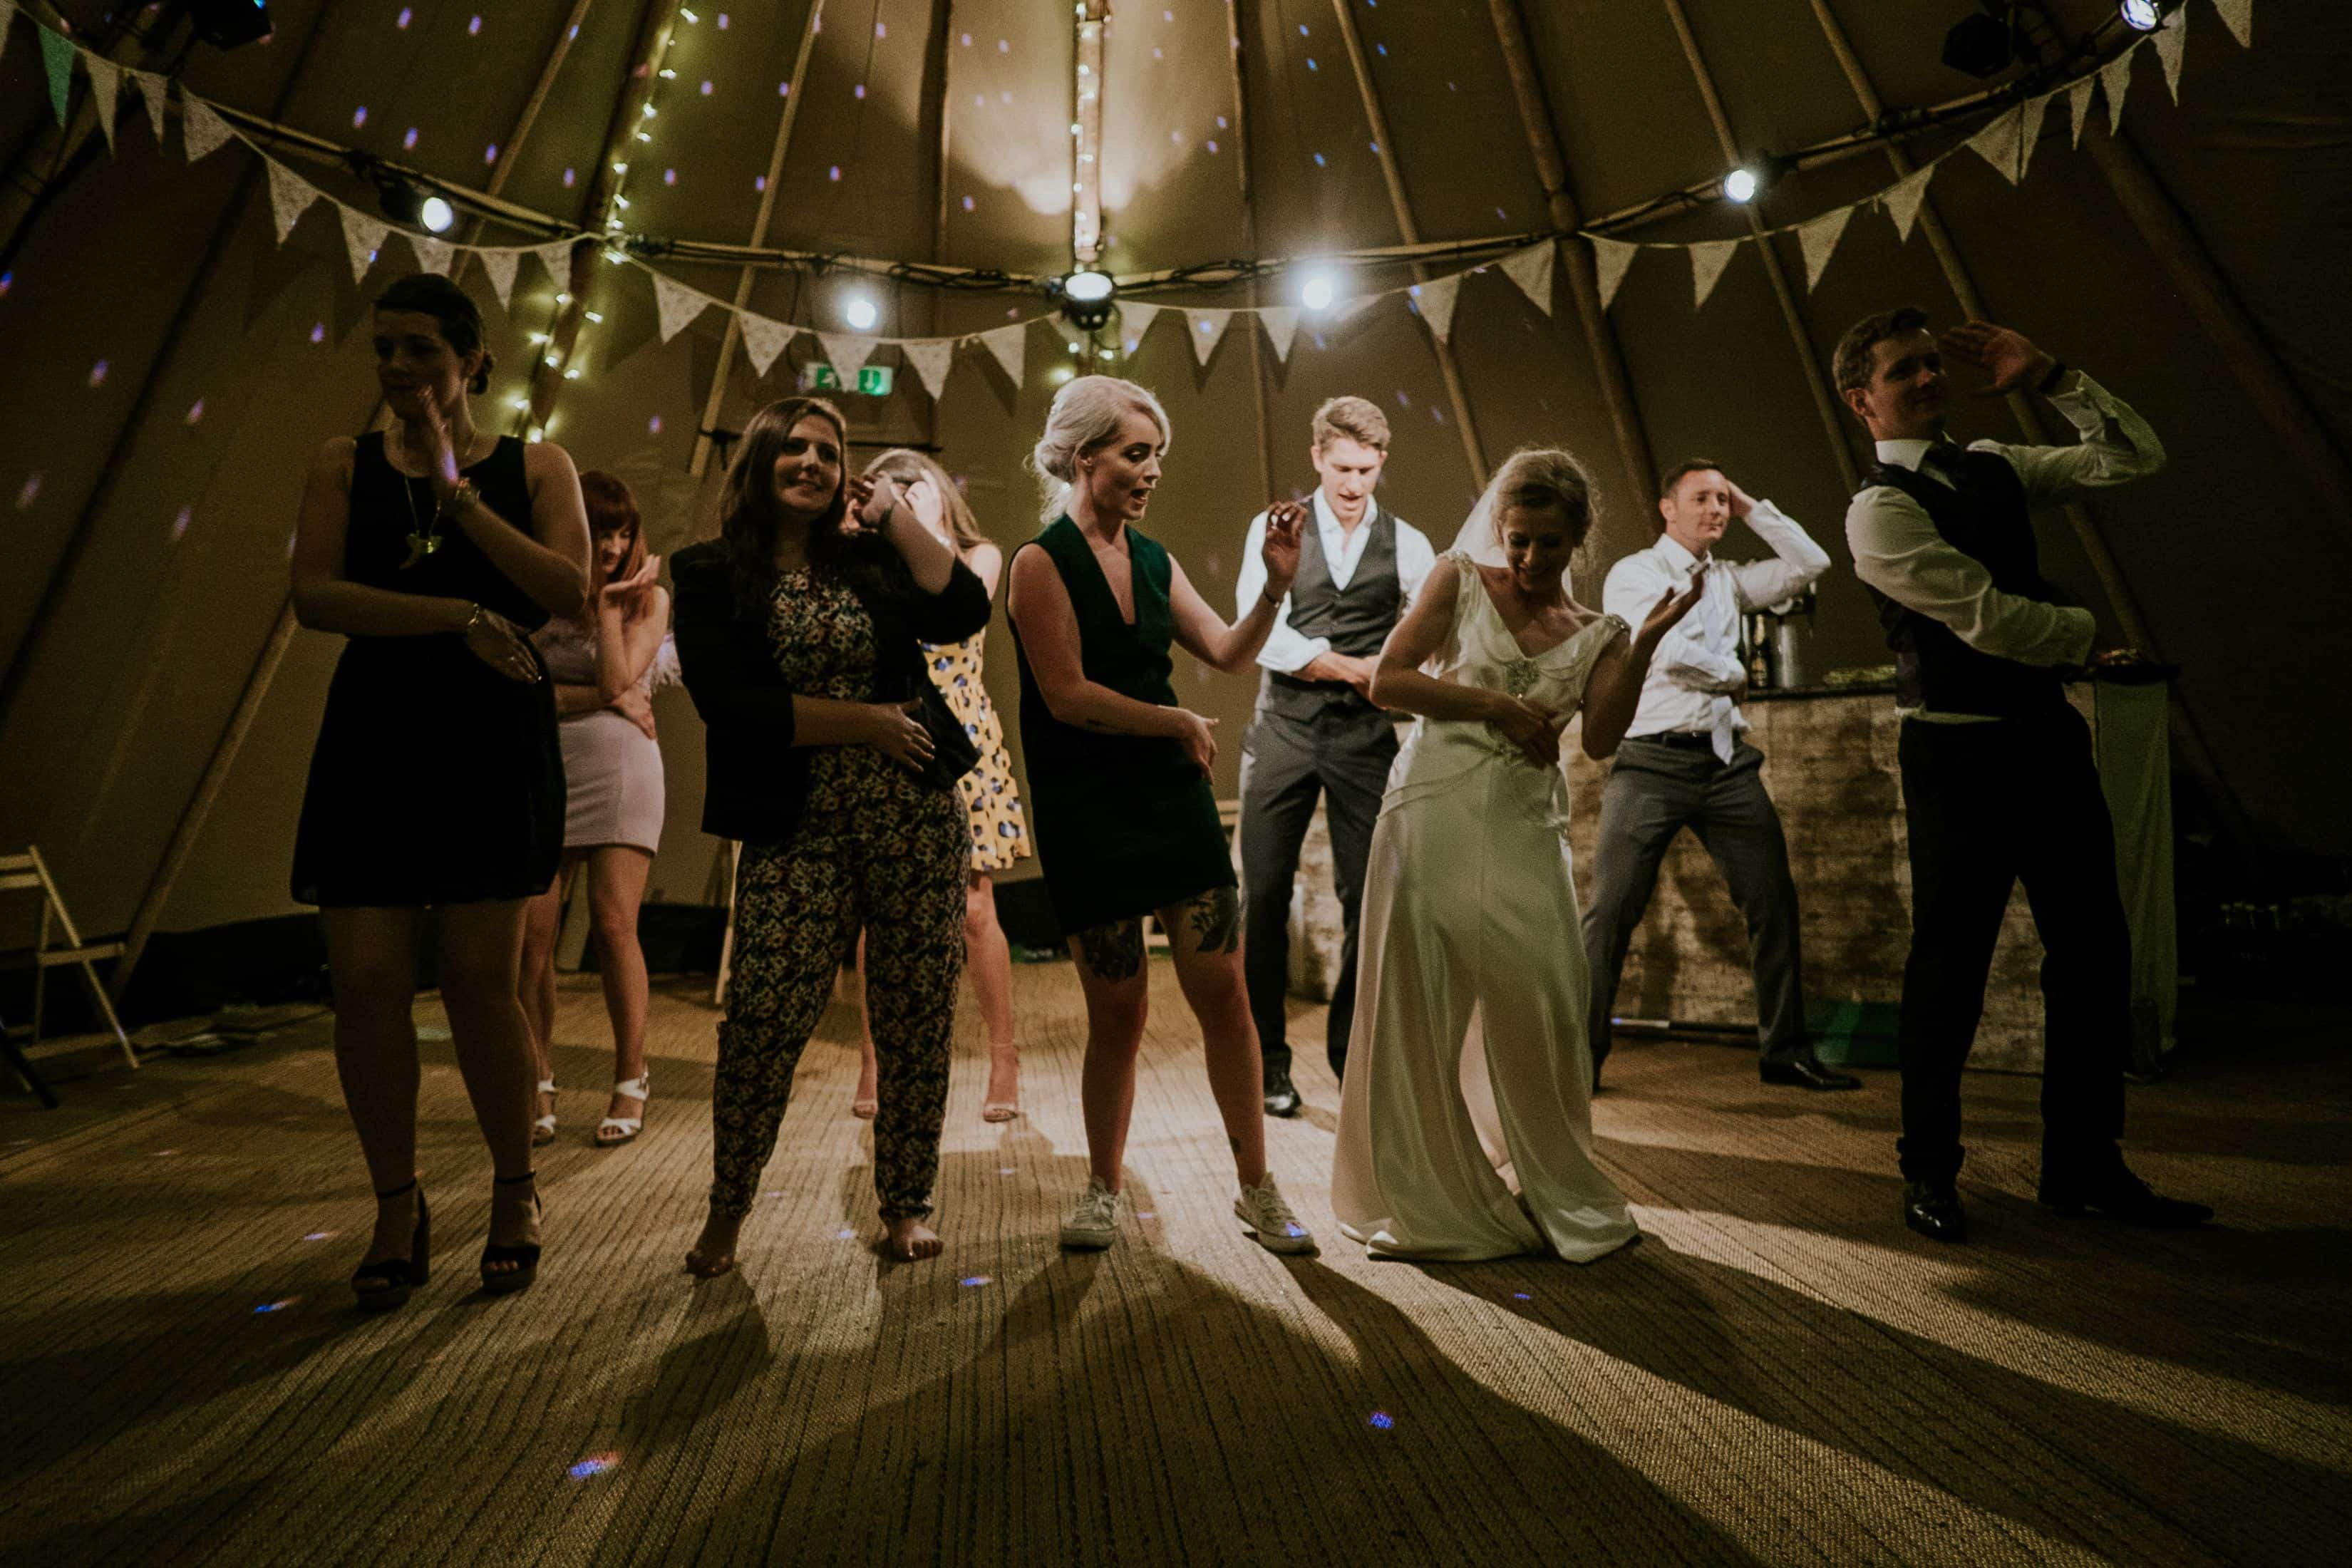 people having fun and dancing in a wedding party